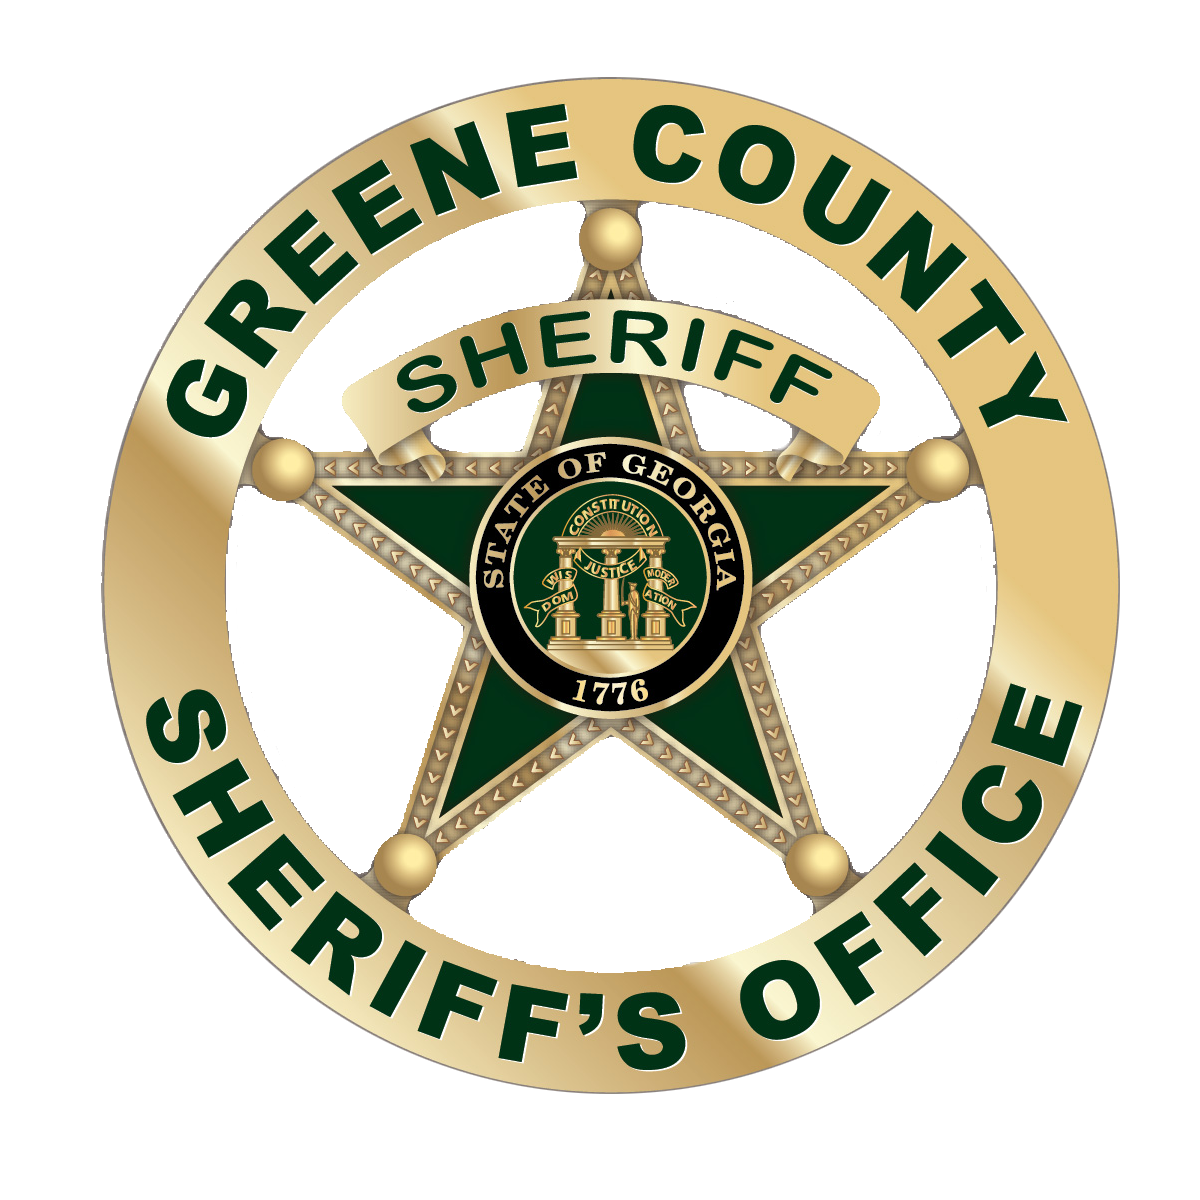 Greene County Sheriff's Office - 81 Crime and Safety updates